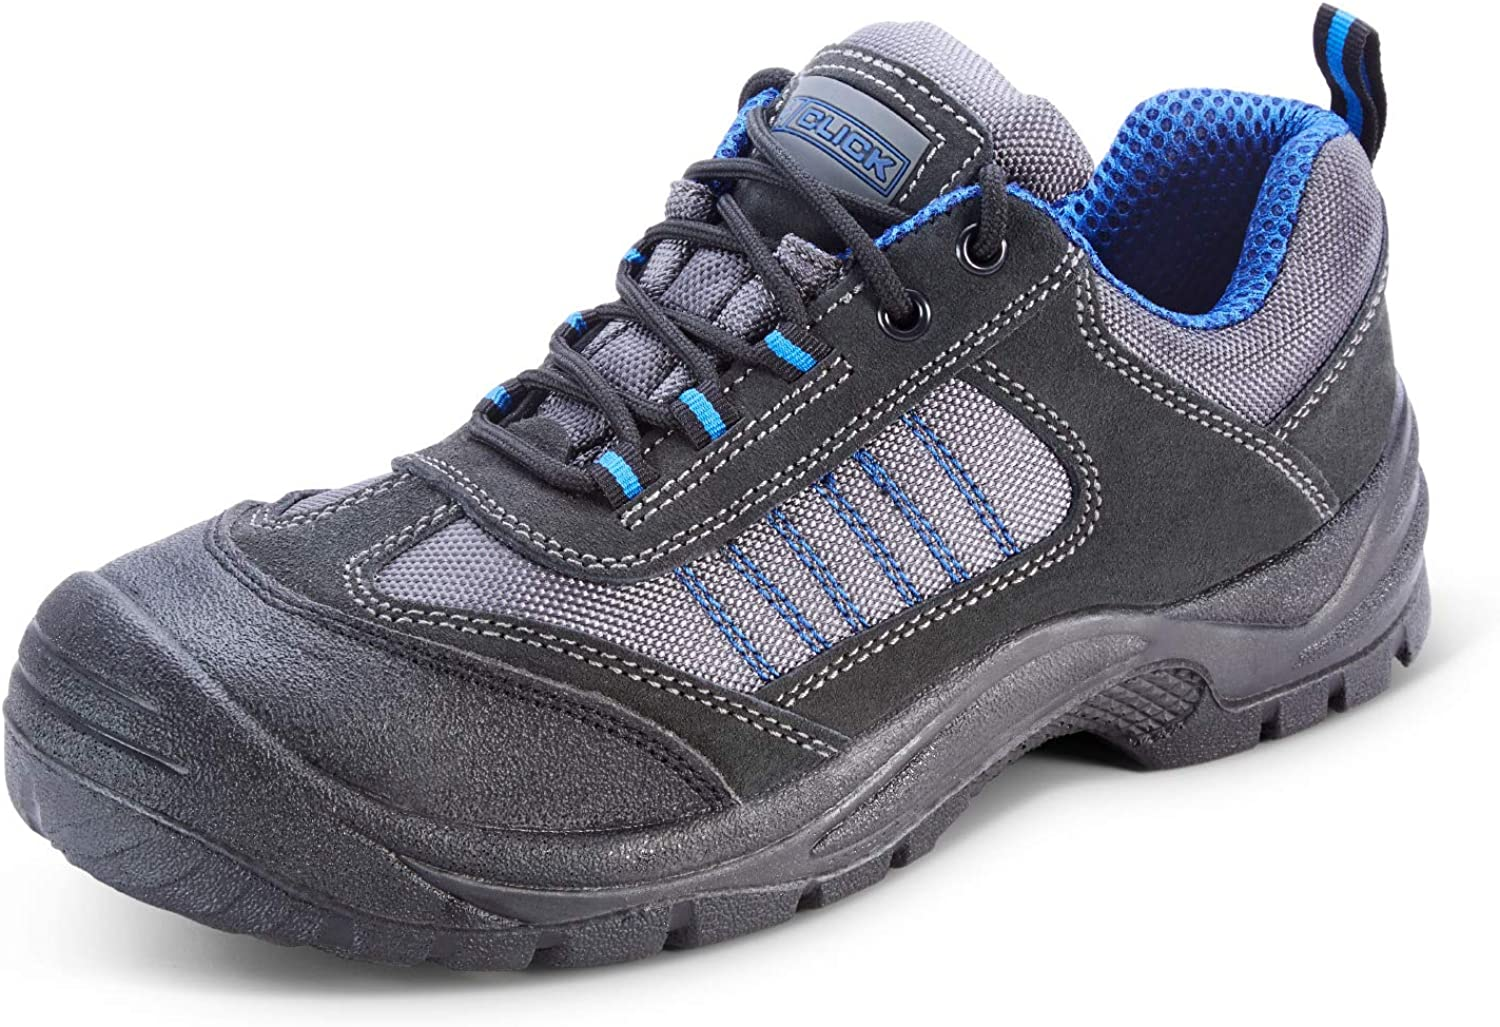 Safety Footwear Black bluee Dual Density Trainer shoes Sizes 5-13 HGCF17BS